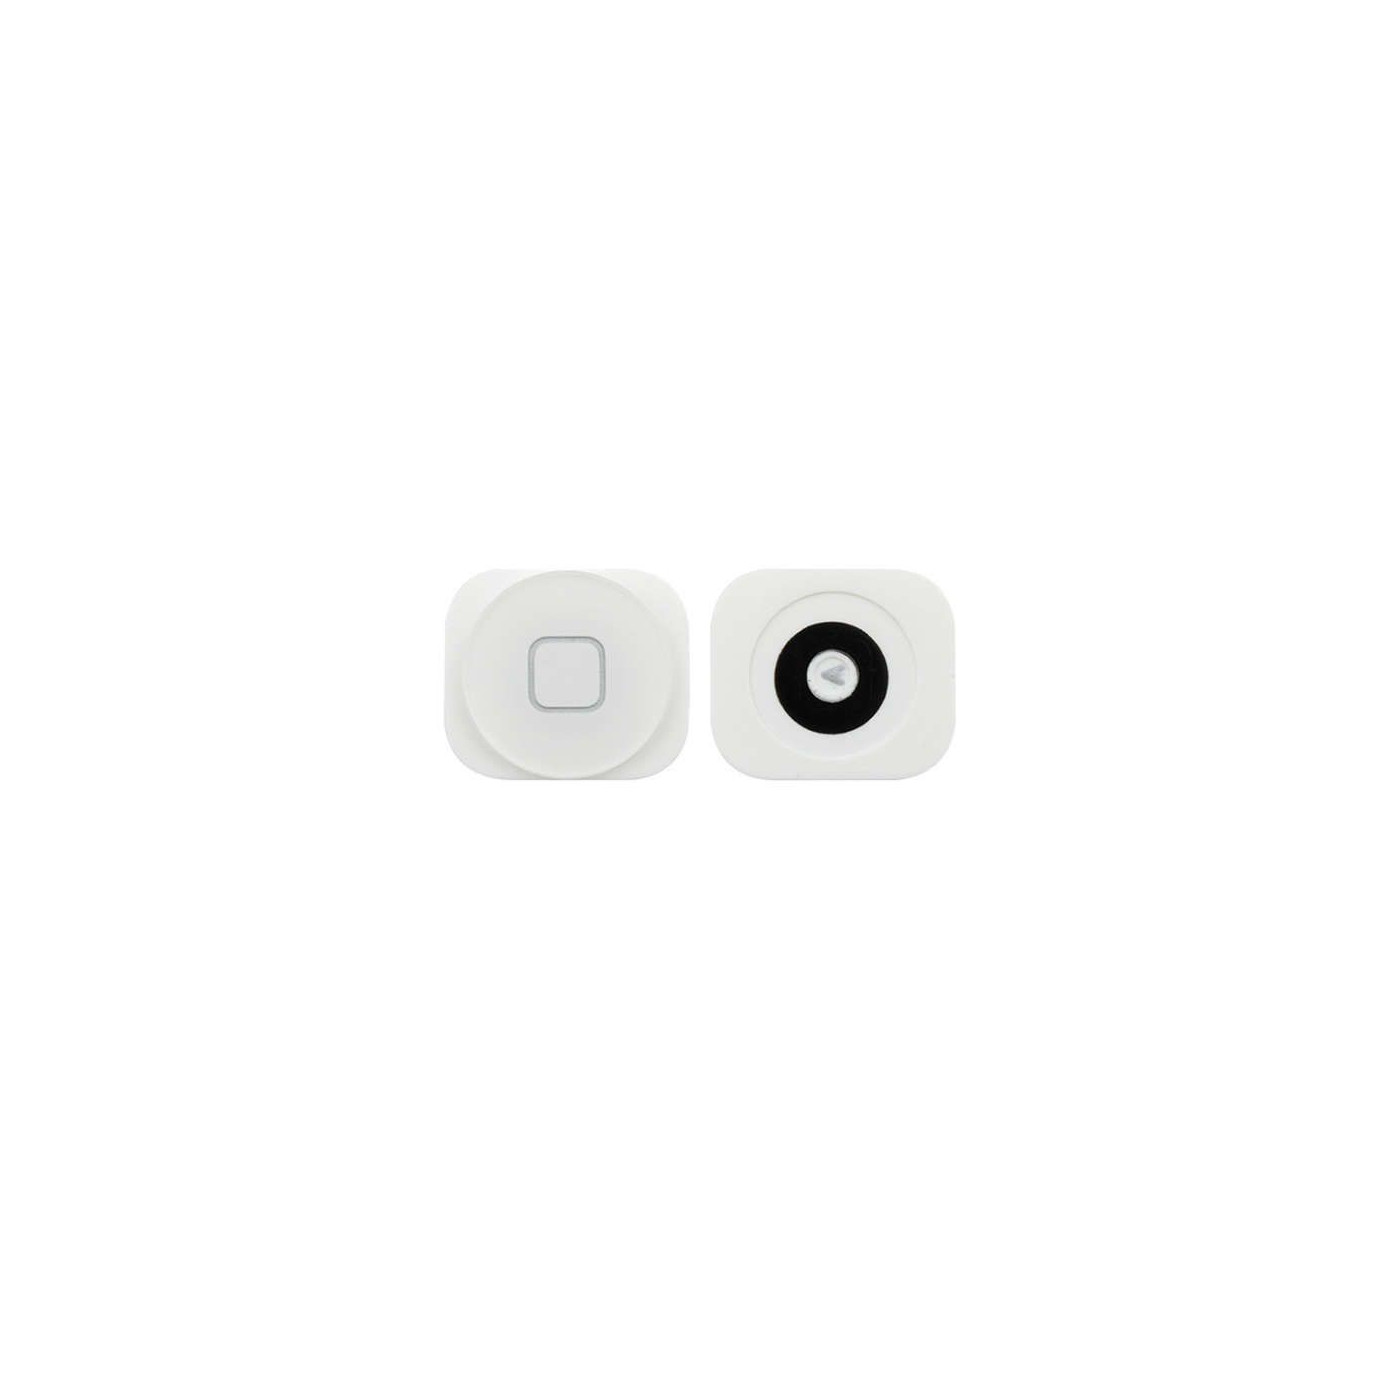 Tasto home per apple iphone 5c bianco button bottone centrale pulsante cursore